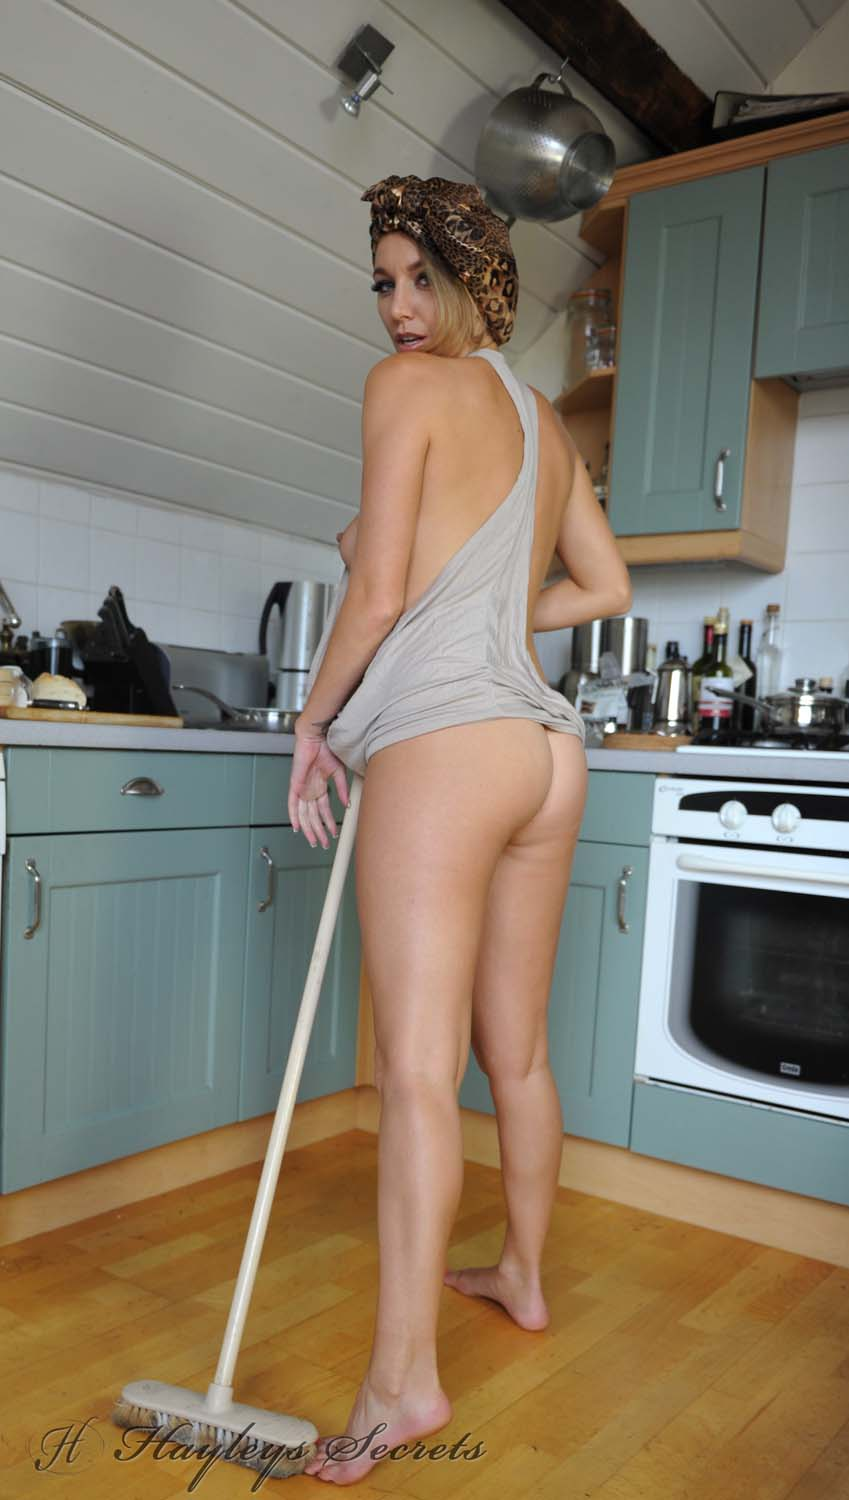 Naked men housework